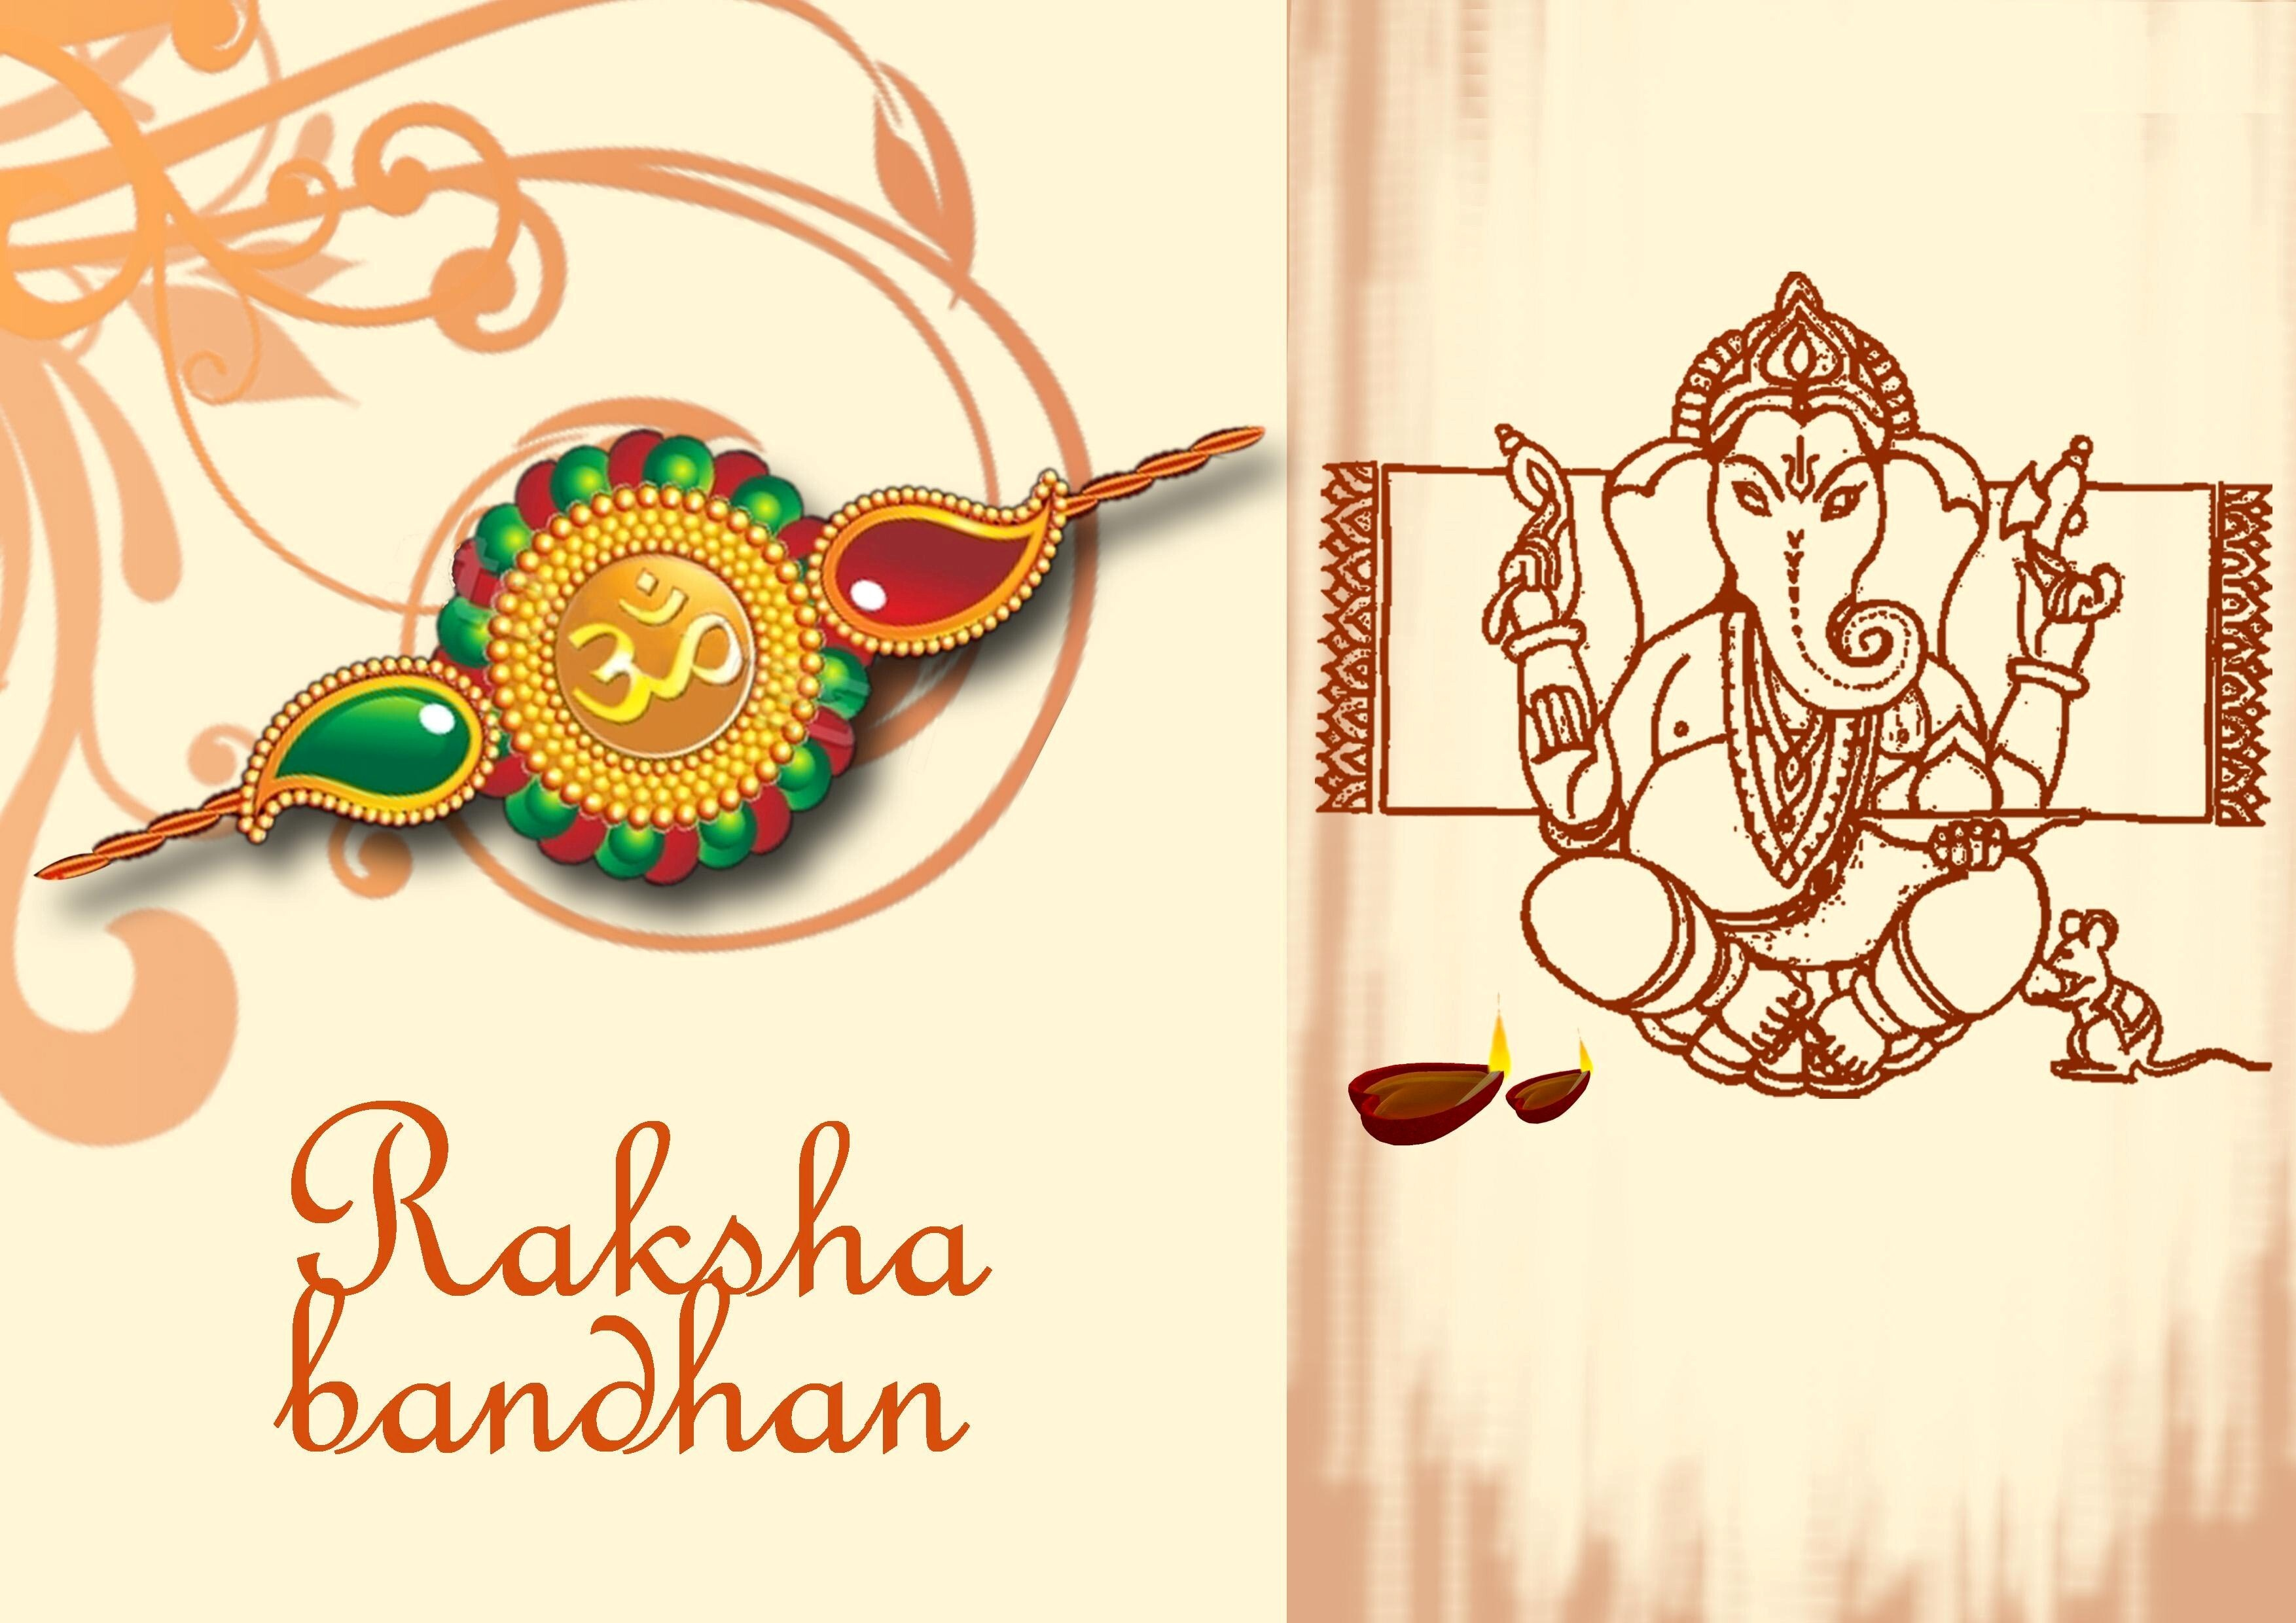 Raksha Bandhan Greetings Wallpaper | HD Wallpapers